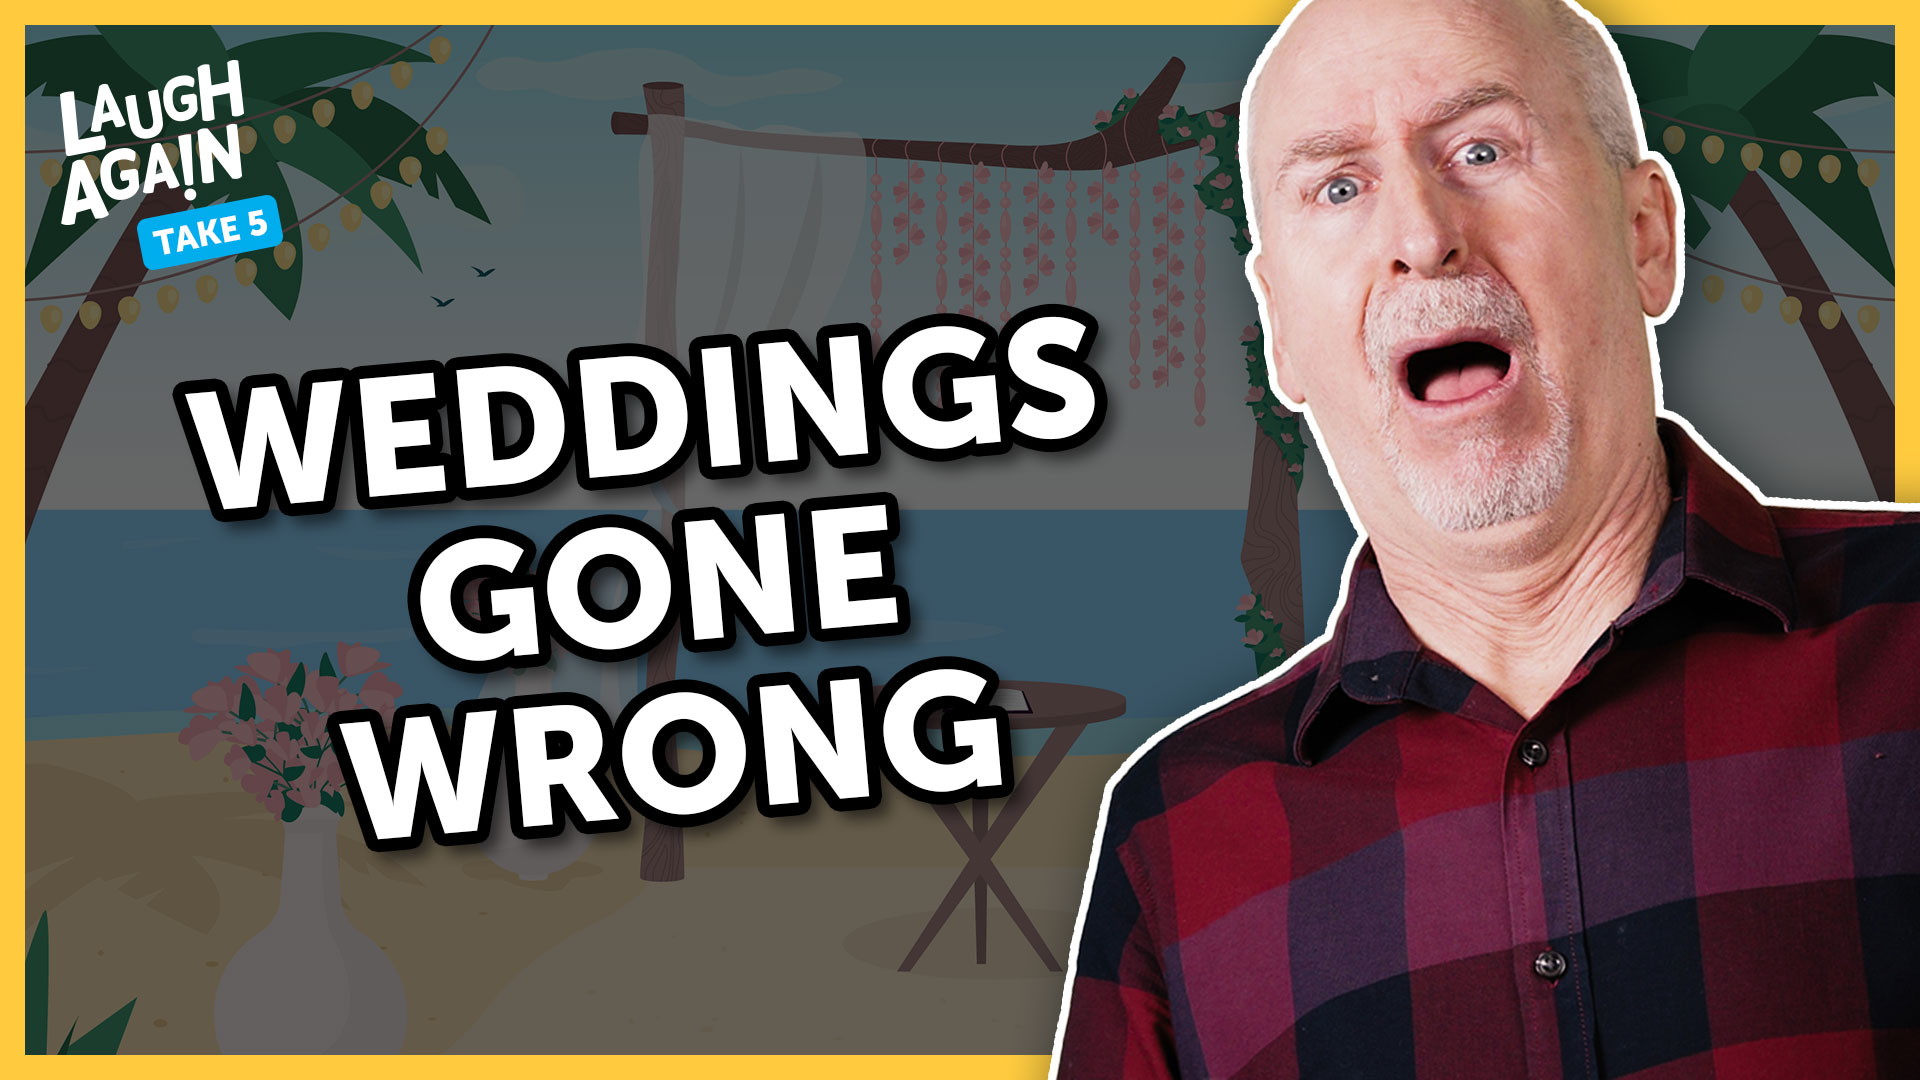 Weddings Gone Wrong | Laugh Again Take 5 with Phil Callaway